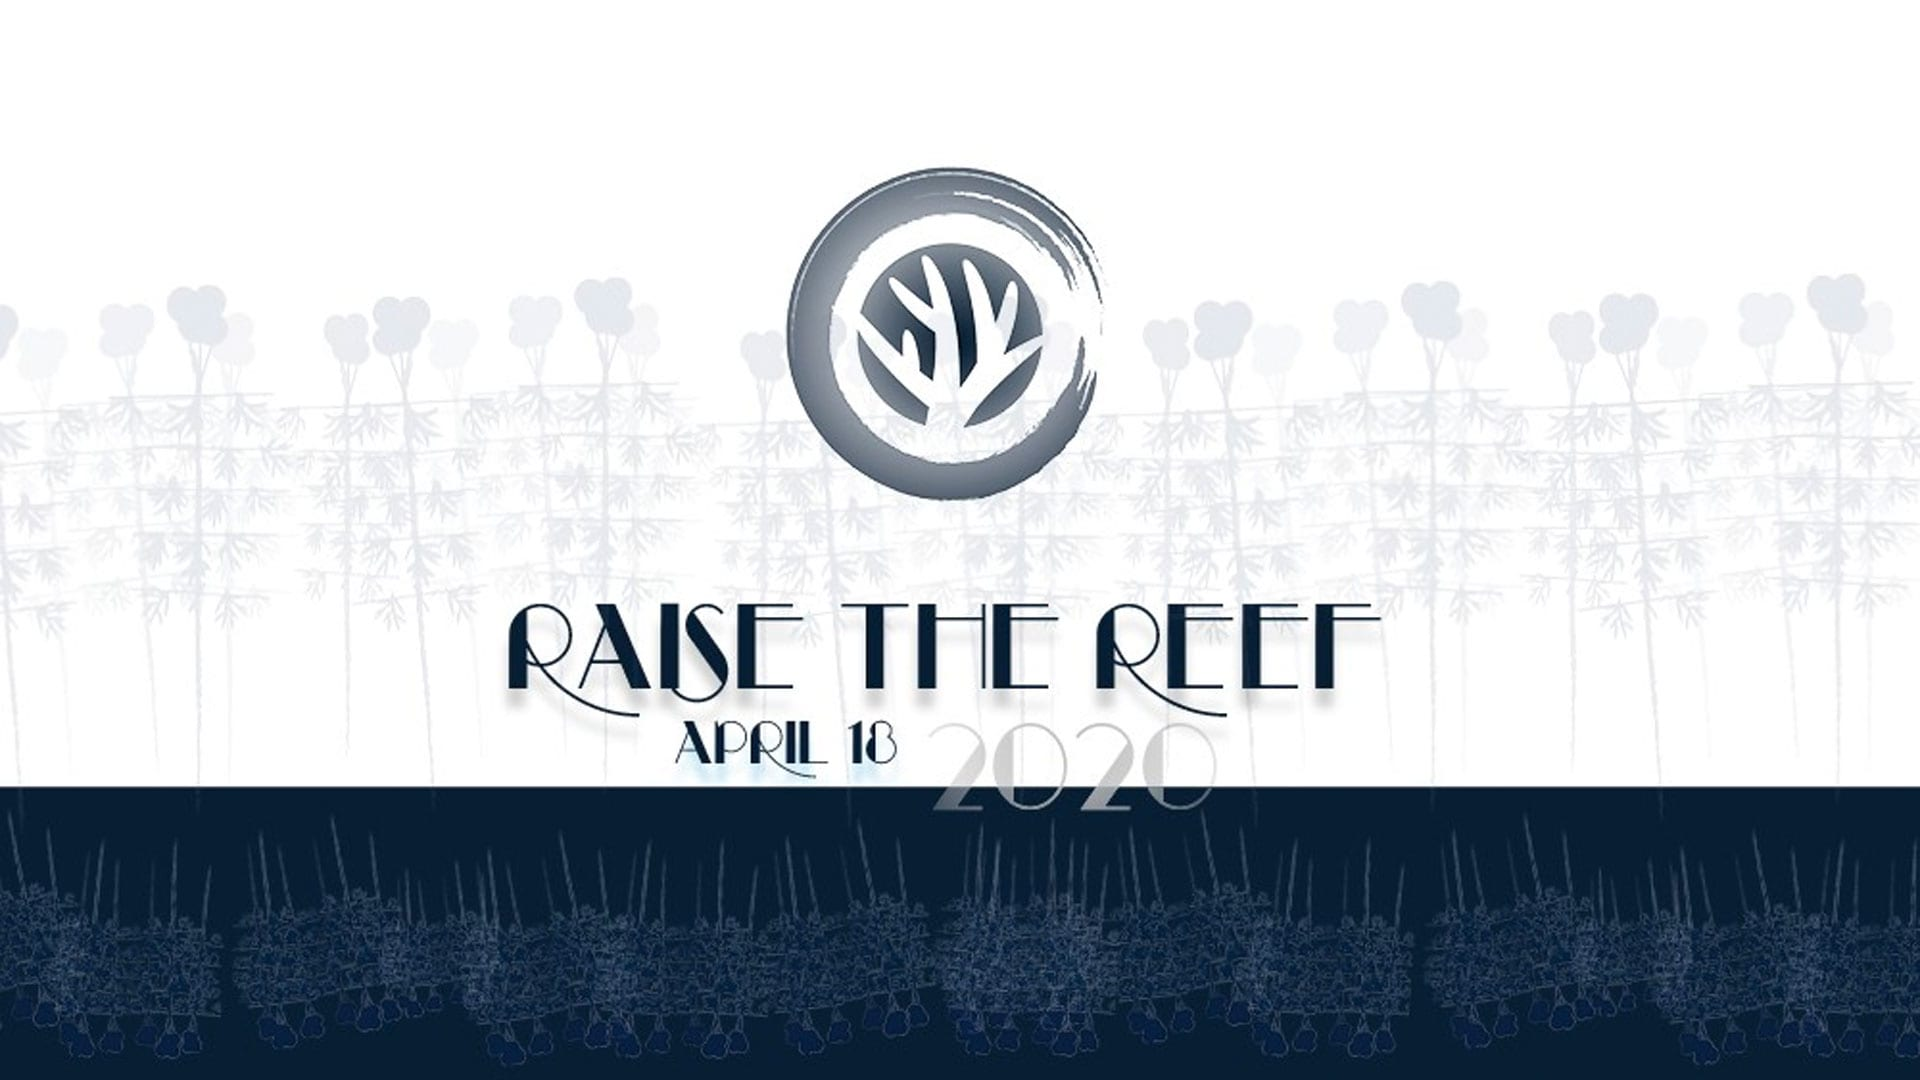 Coral Restoration Foundation Raise the Reef Gala - Sponsored by Tom Thumb Food Stores